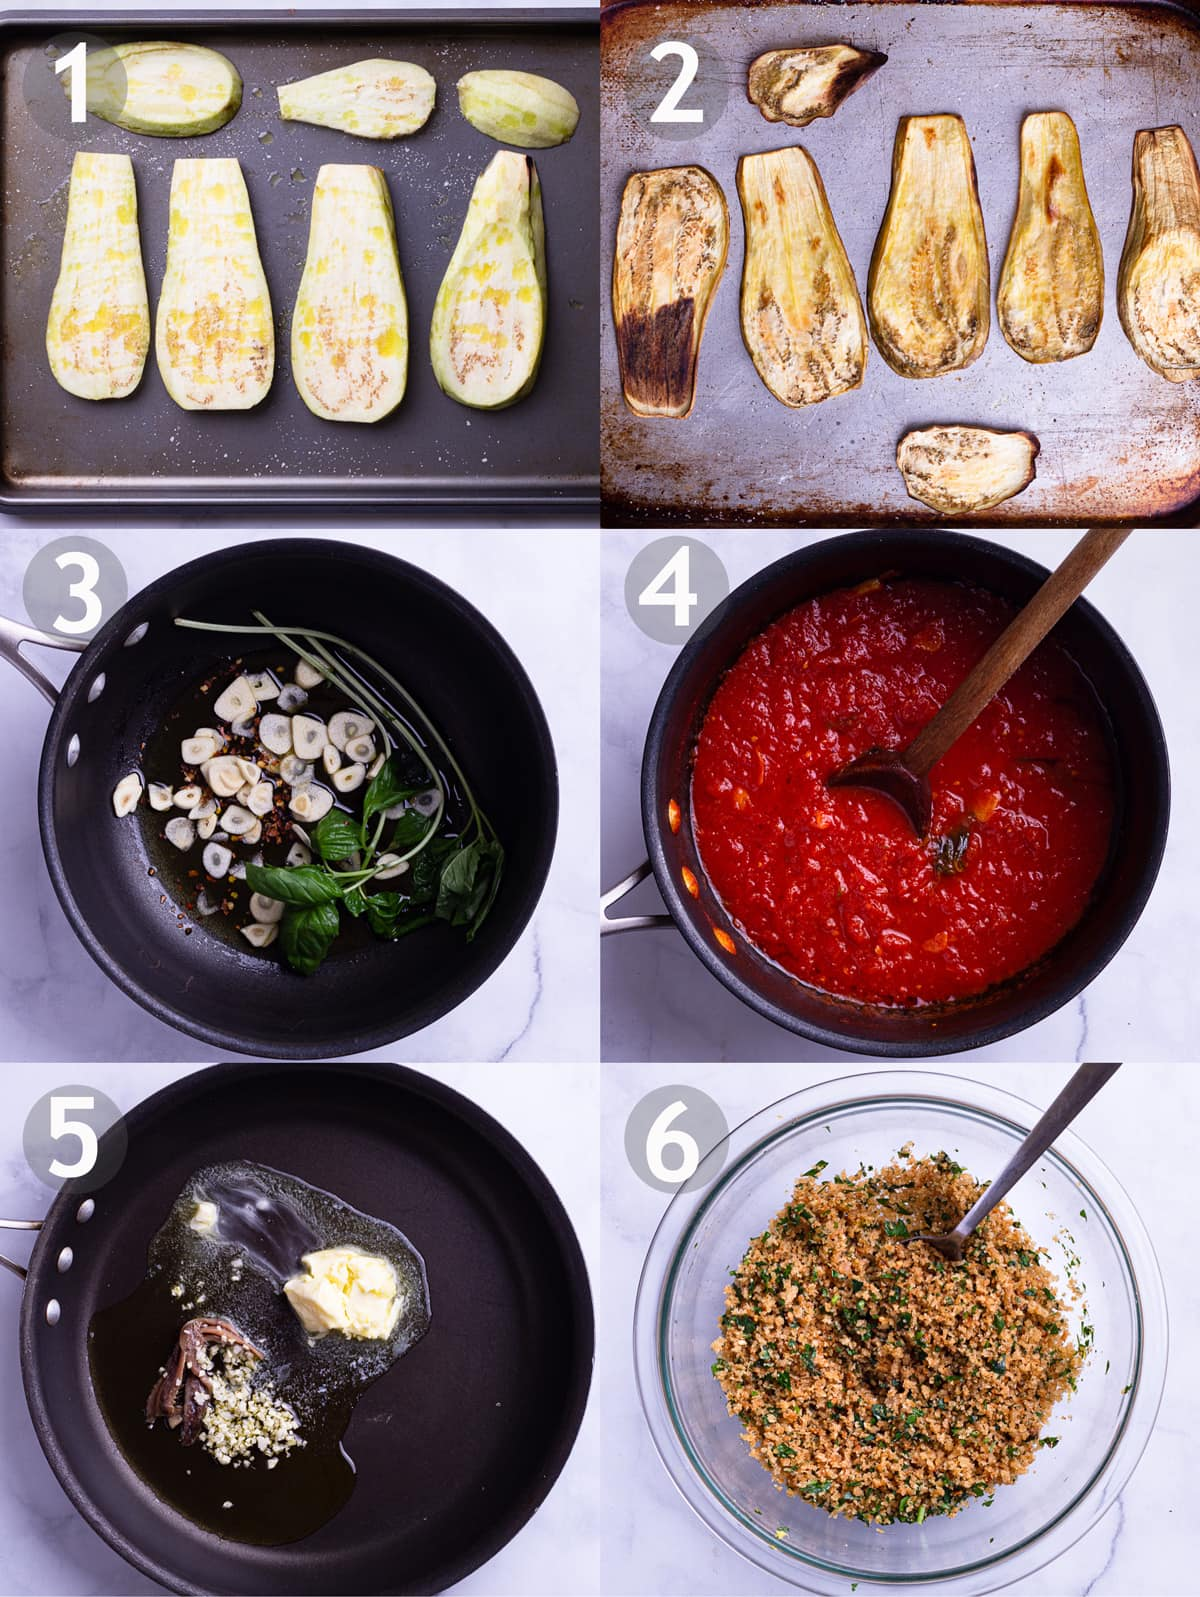 6 step by step photos showing how to roast eggplant, make a tomato basil sauce and make the garlic butter breadcrumbs.